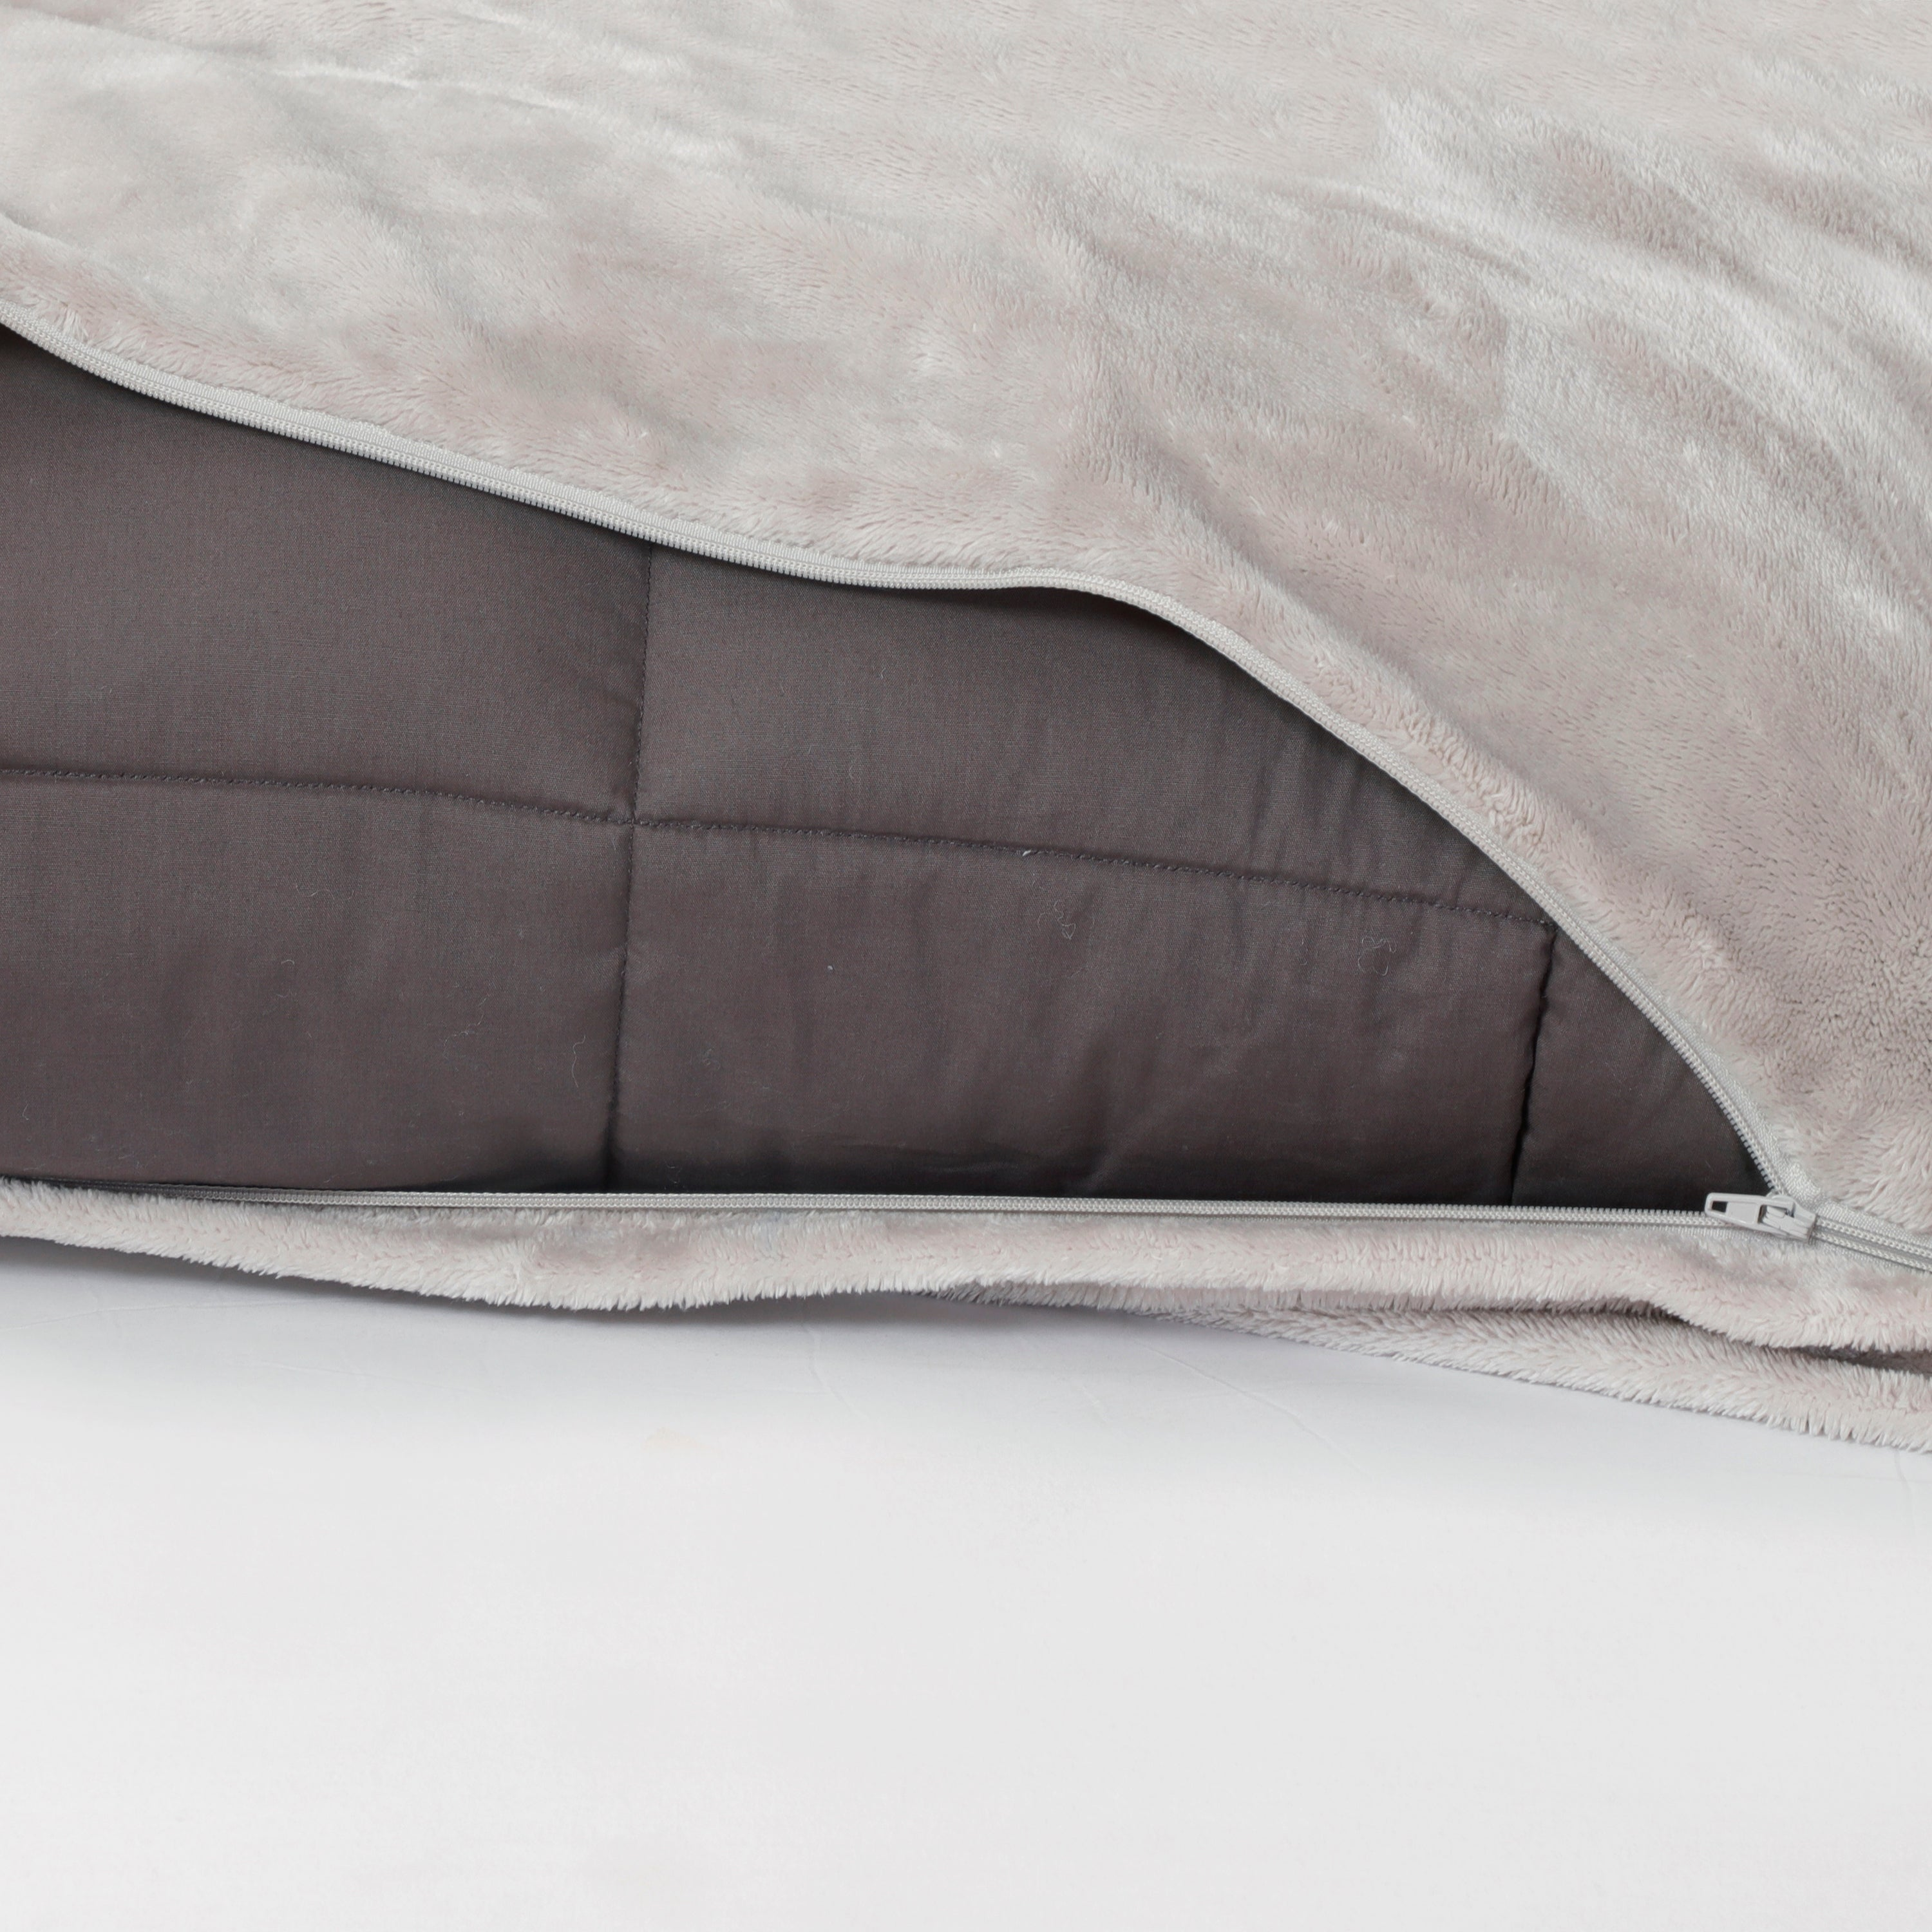 Dreamlab Acupressure 48x72 Weighted Blanket With Removable Cover Overstock 22732041